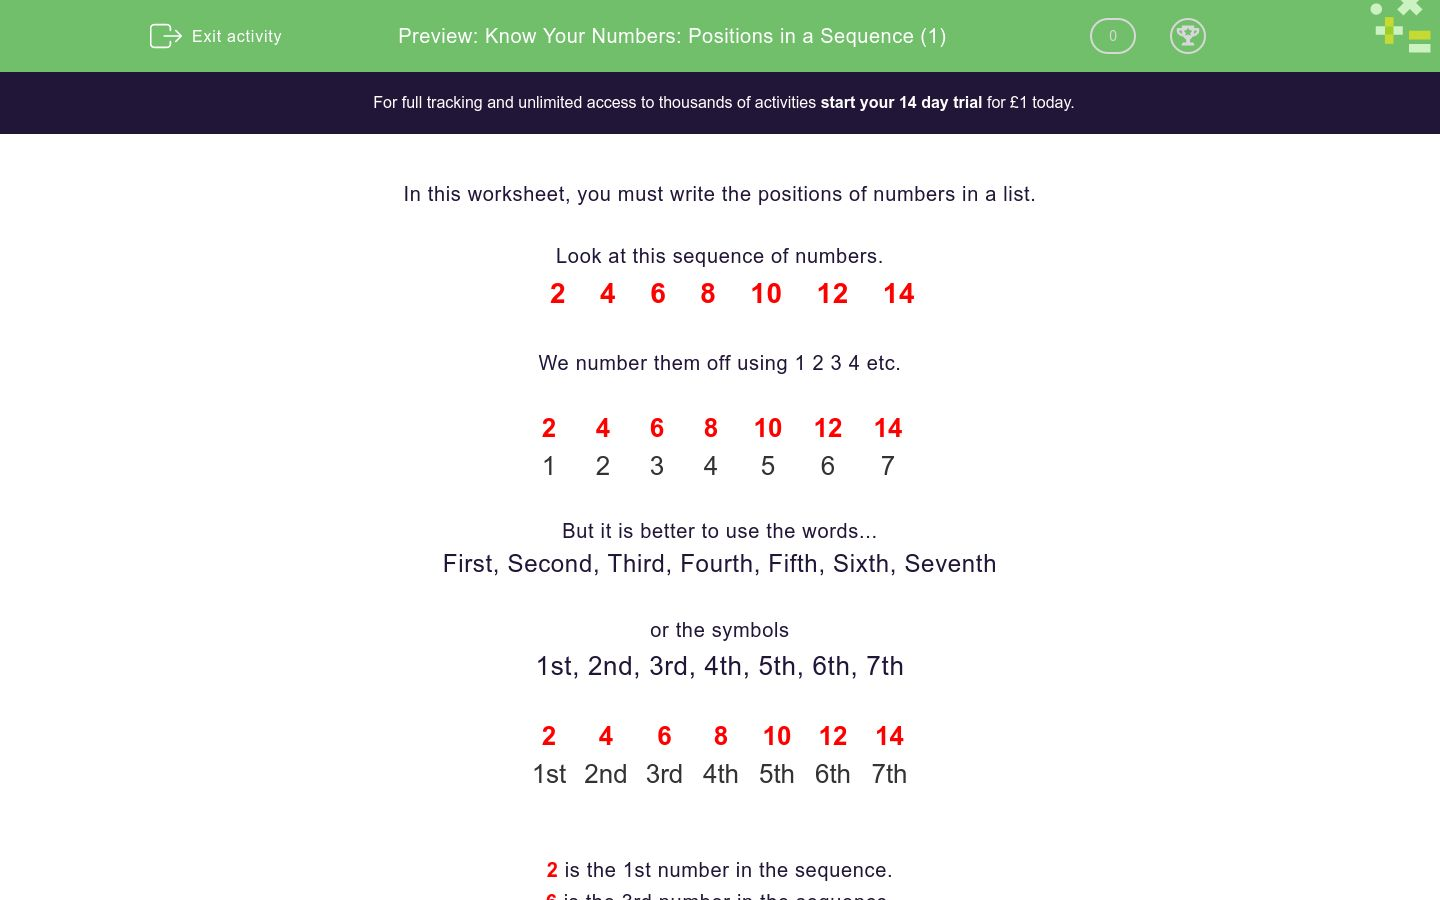 'Know Your Numbers: Positions in a Sequence (1)' worksheet